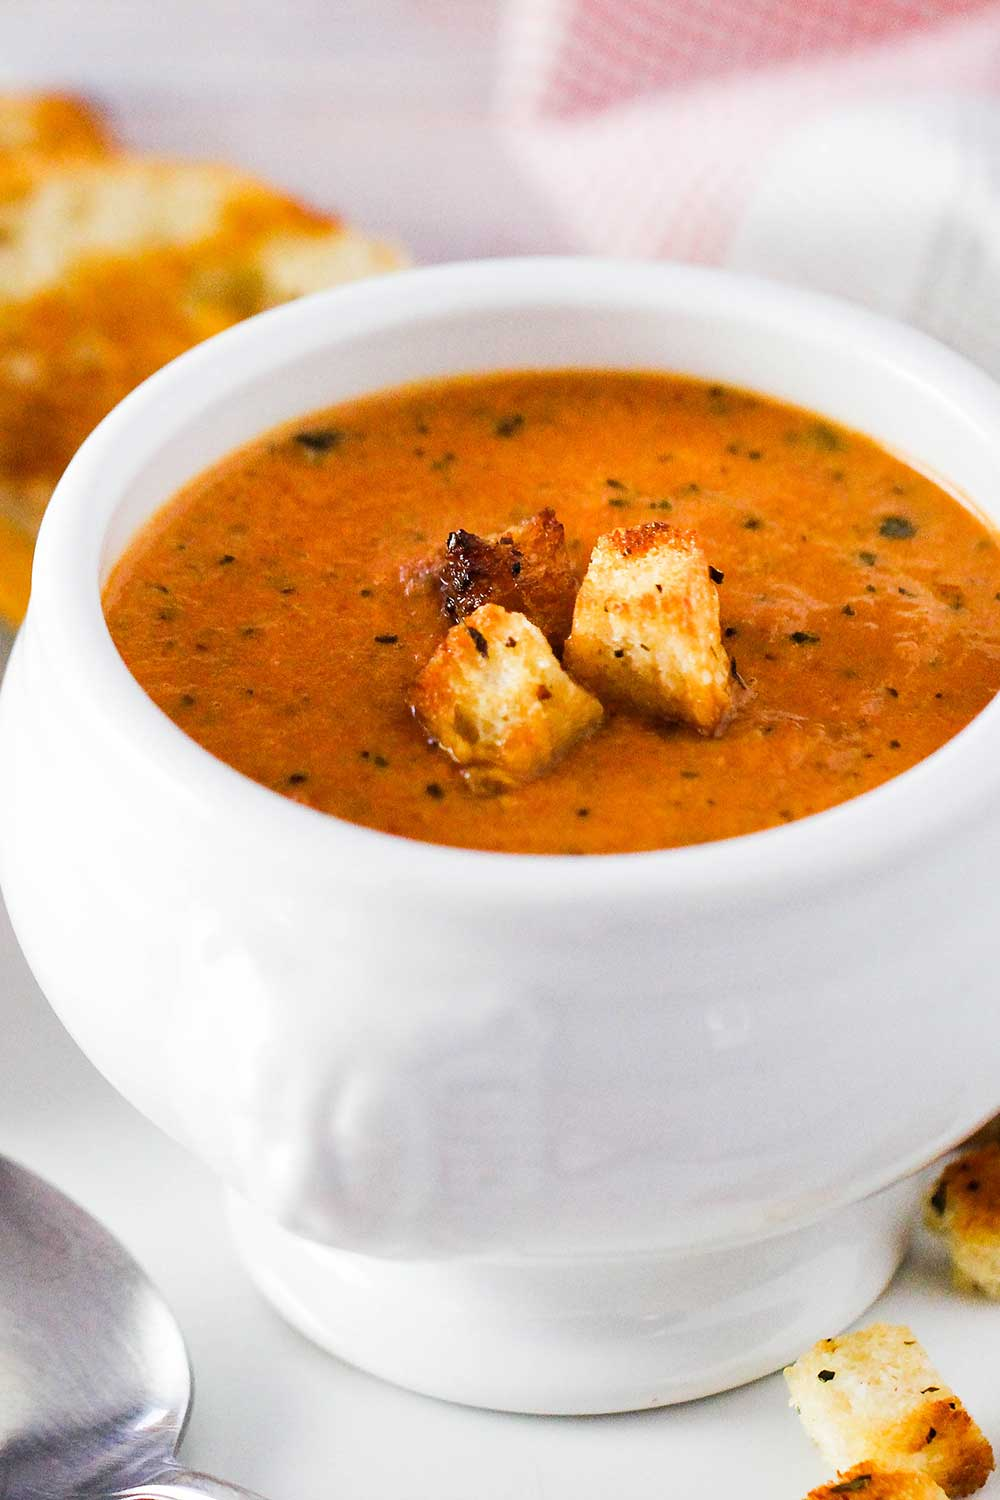 A white bowl of roasted tomato basil soup with croutons on top.